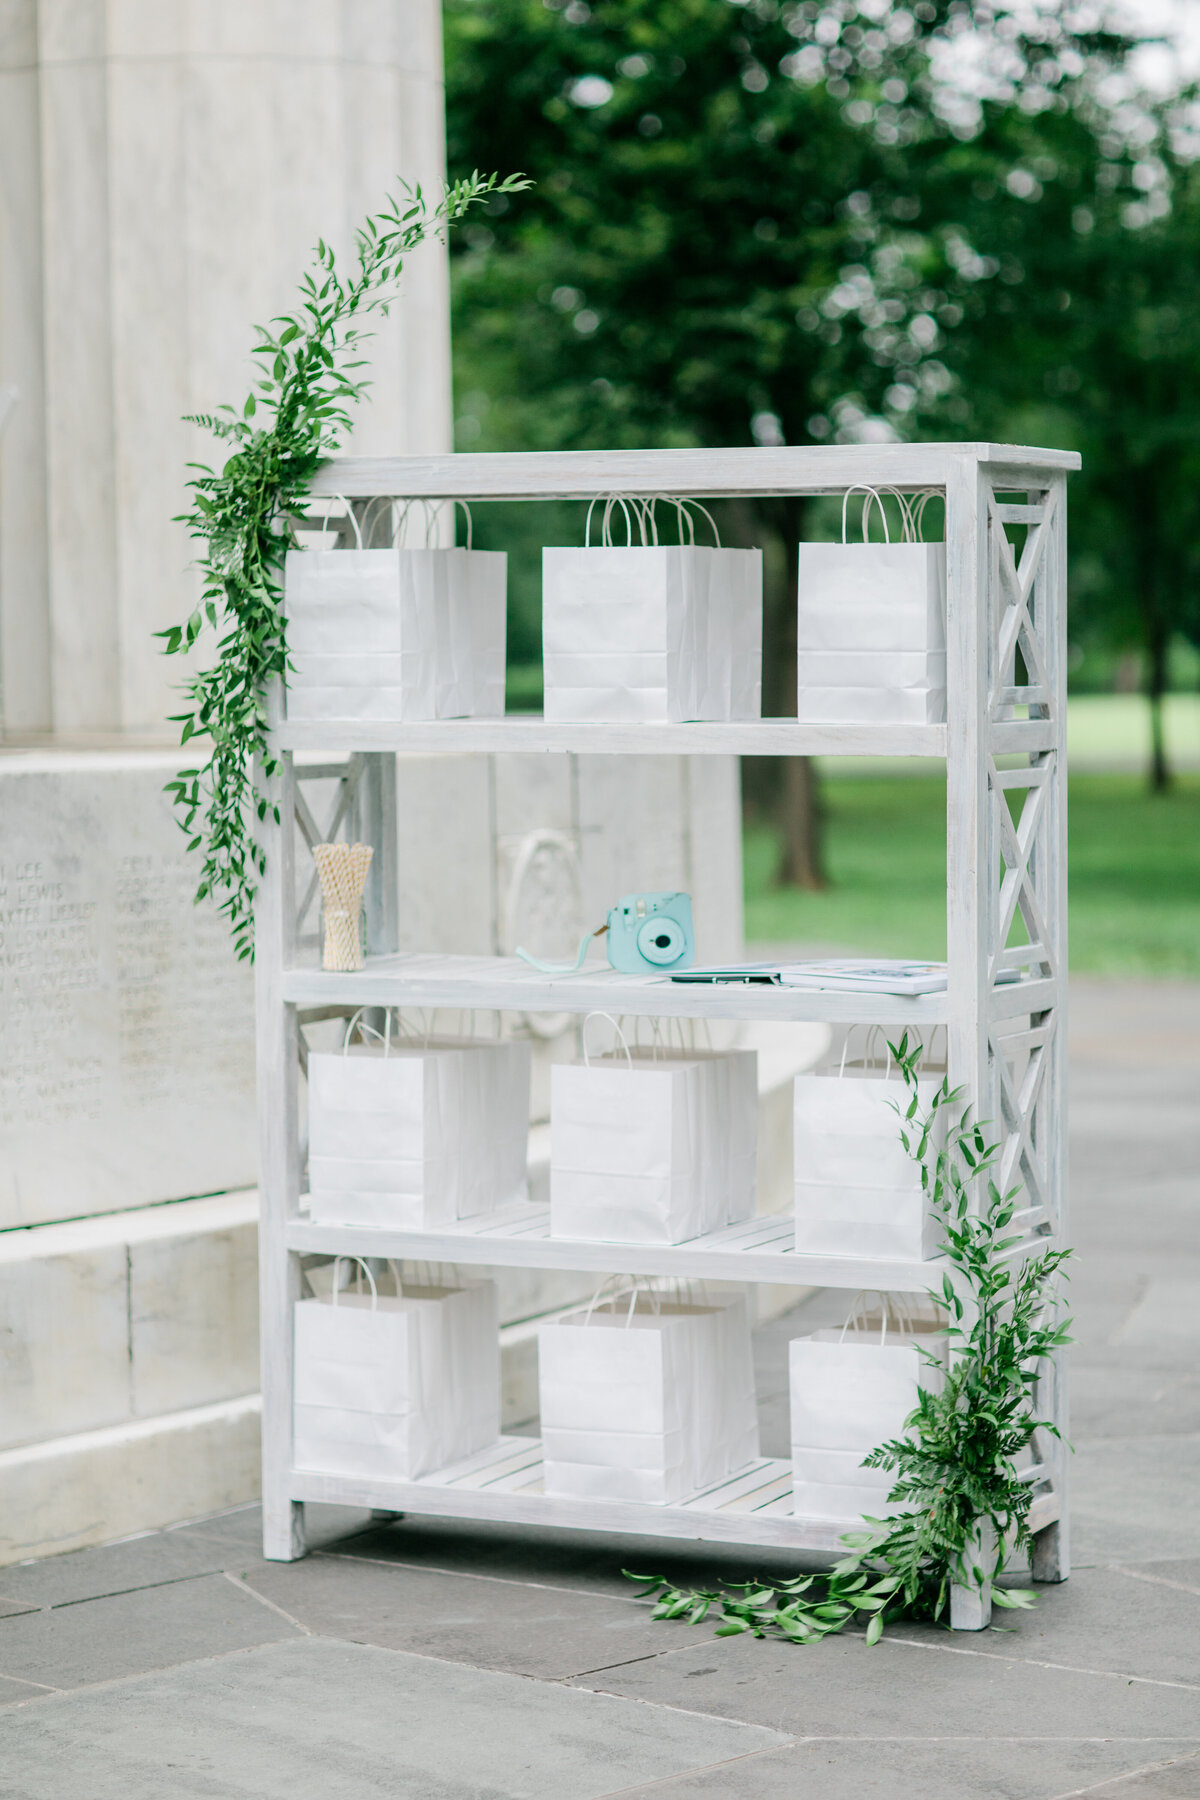 Solomon_Tkeyah_Micro_COVID_Wedding_Washington_DC_War_Memorial_MLK_Memorial_Linoln_Memorial_Angelika_Johns_Photography-3903